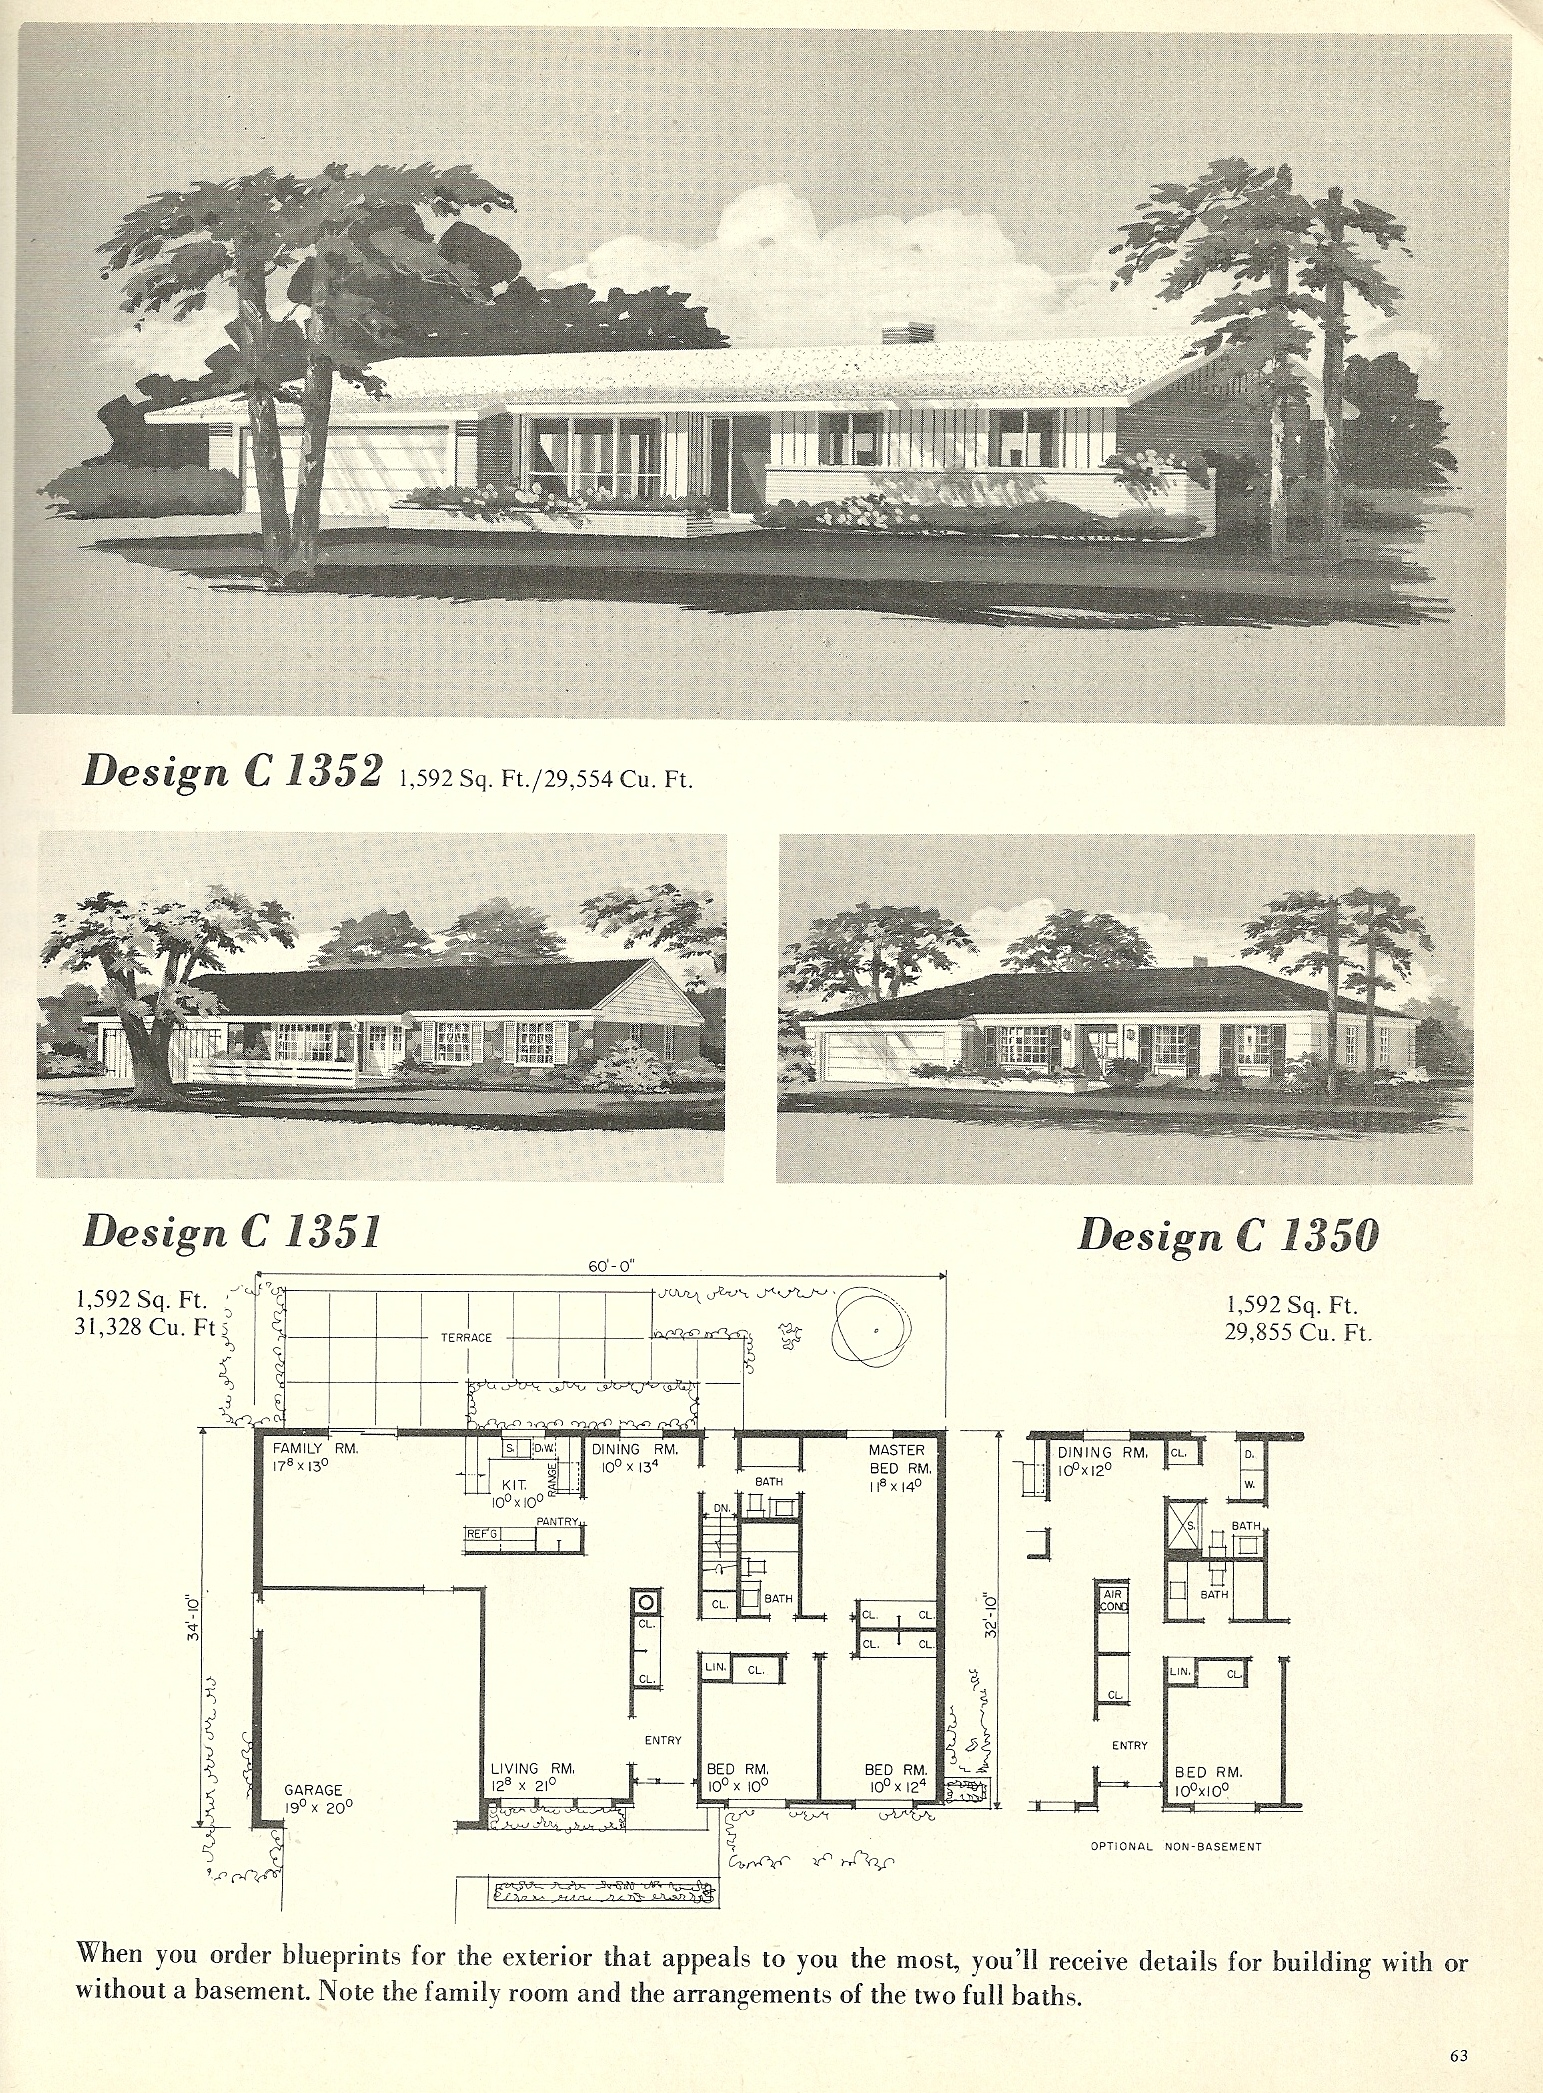 Vintage house plans 1352 antique alter ego for Vintage home plans